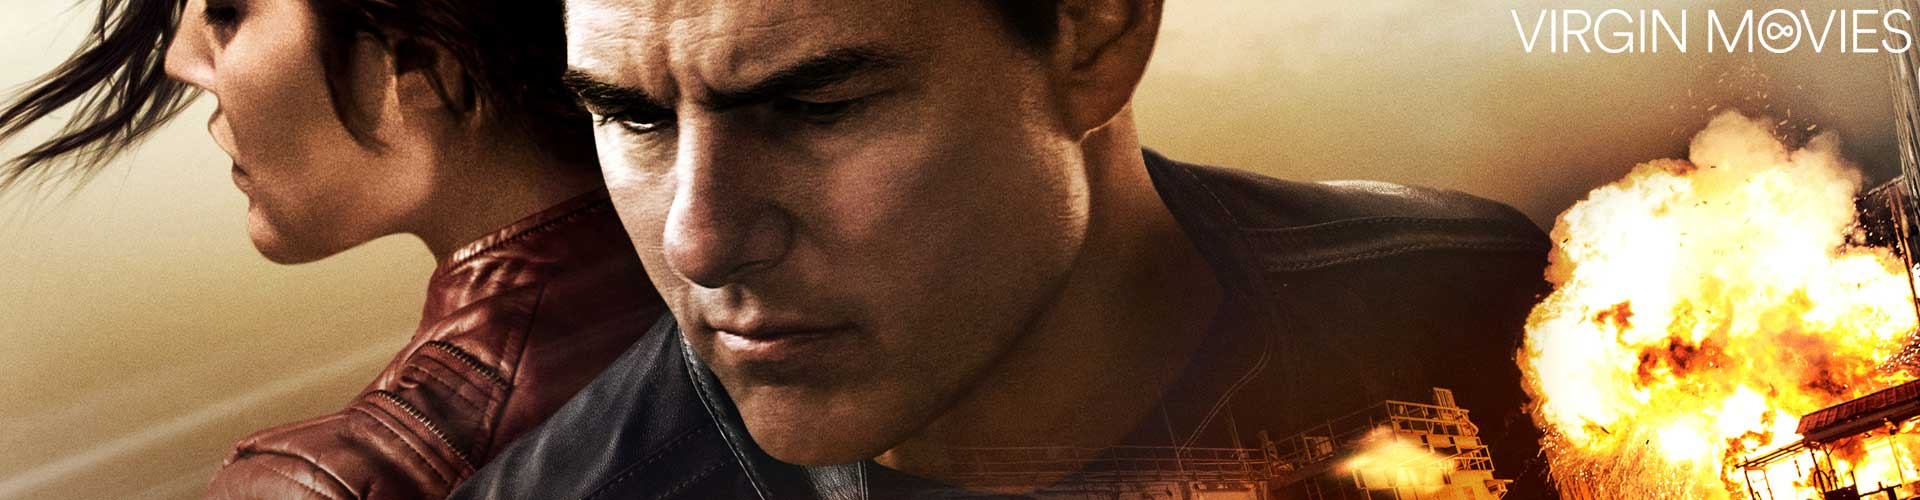 Jack Reacher: Never Go Back - available now on Virgin Movies